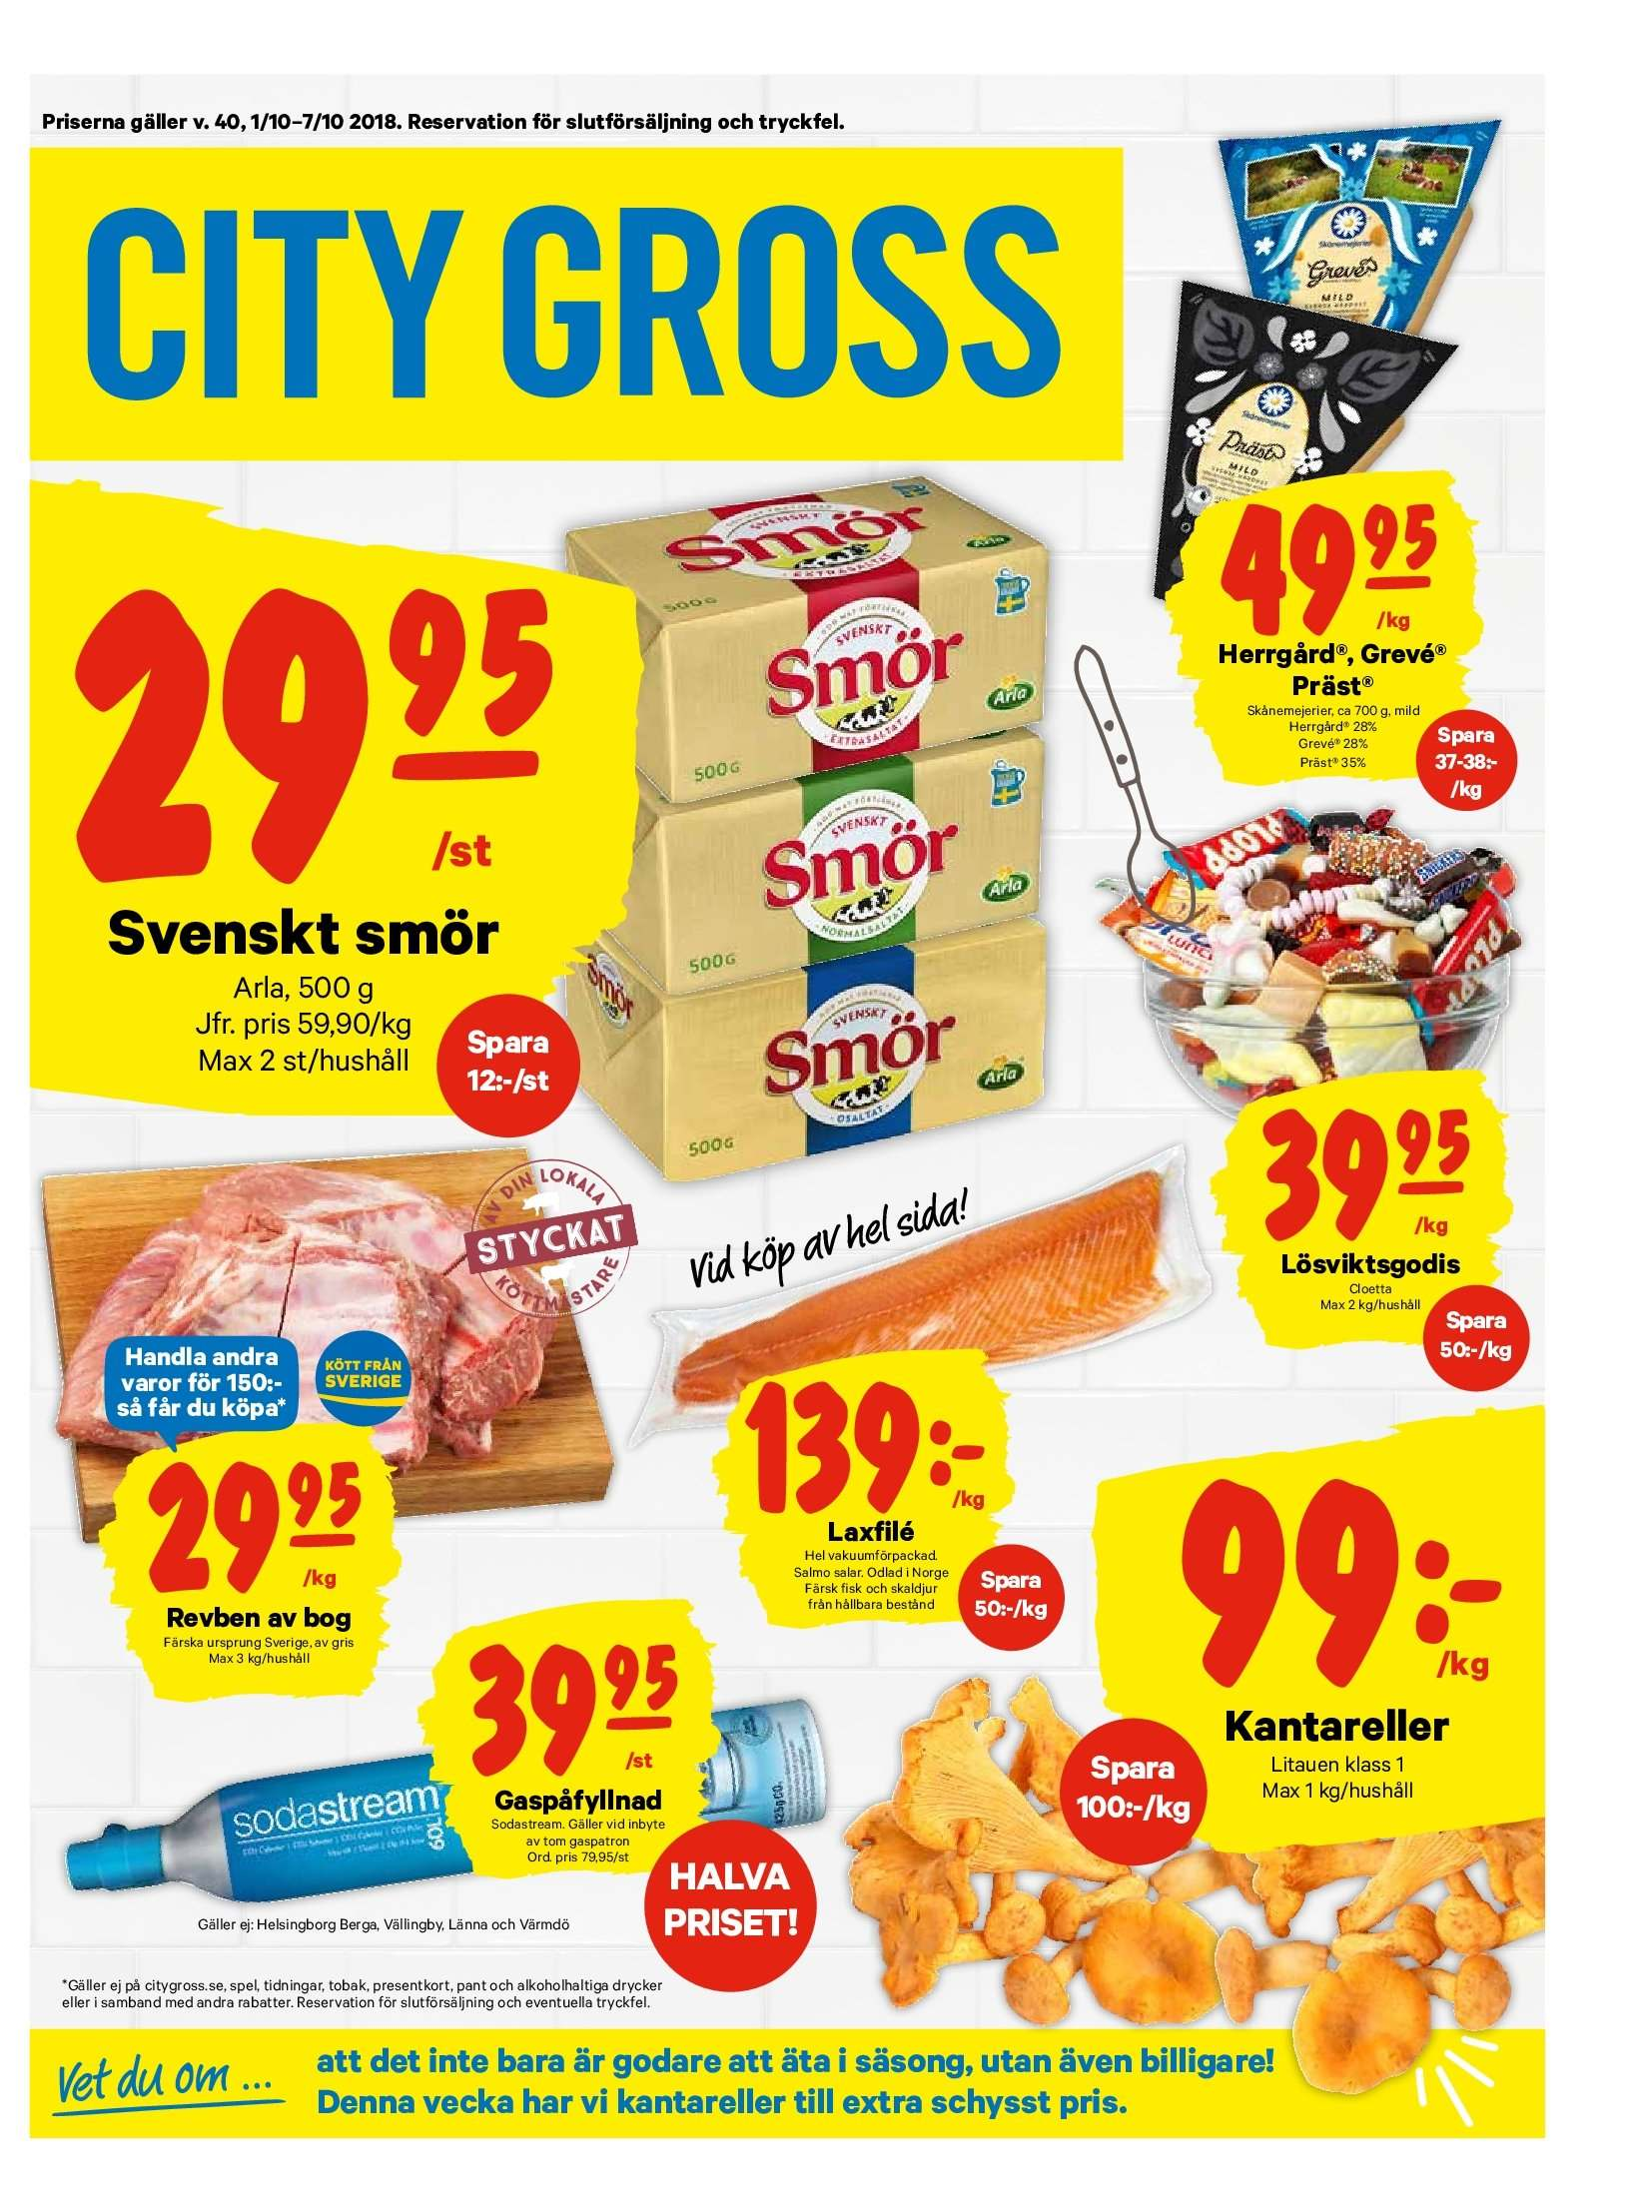 City Gross reklamblad - 1/10 2018 - 7/10 2018. Sida 1.